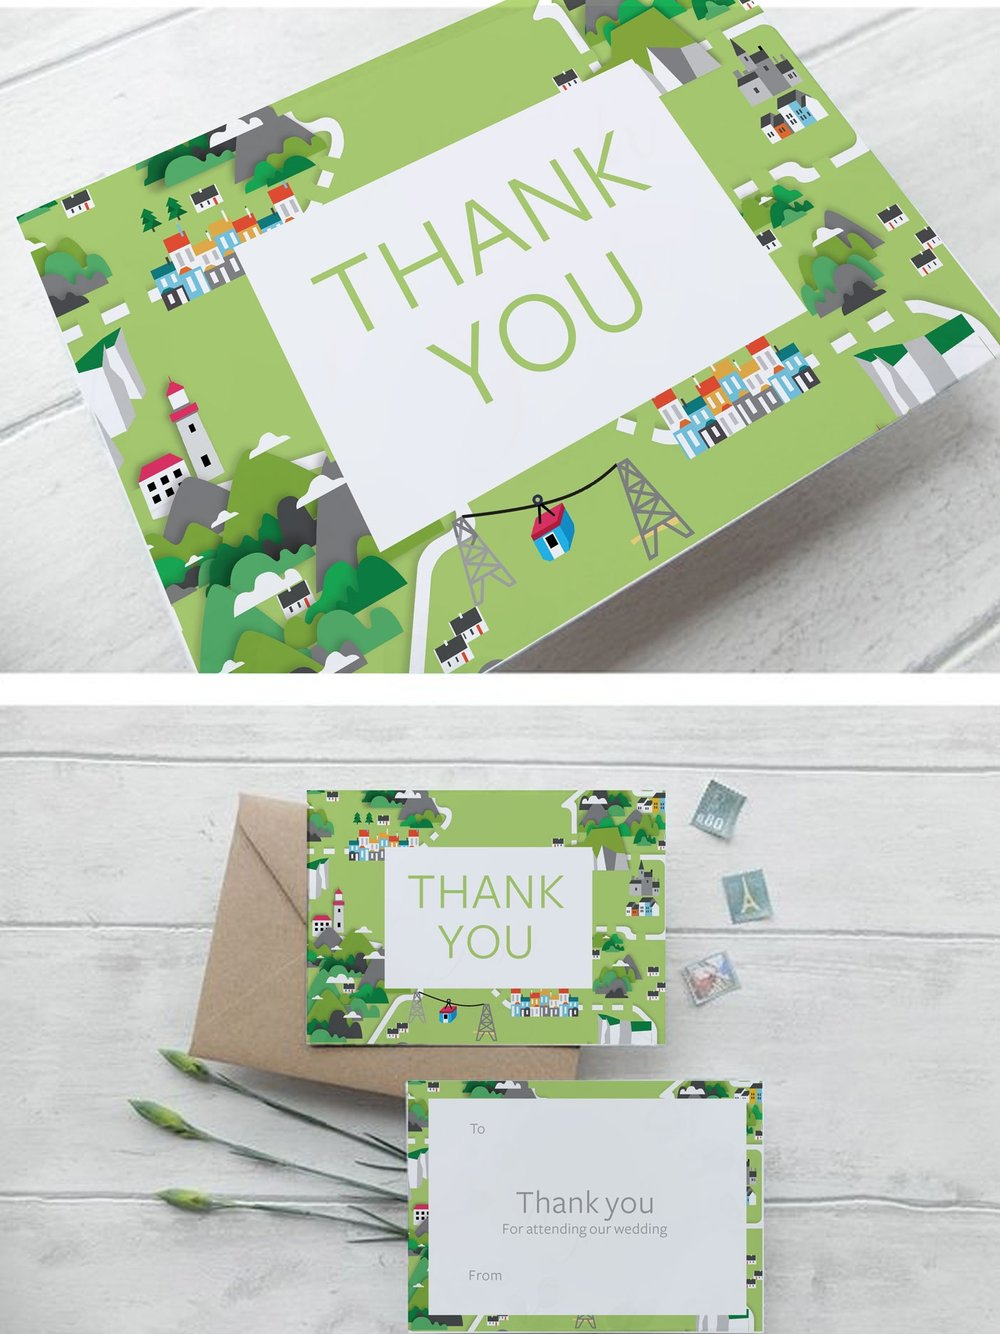 Reddin-designs-product-page-of-Thank-you-cards.jpg